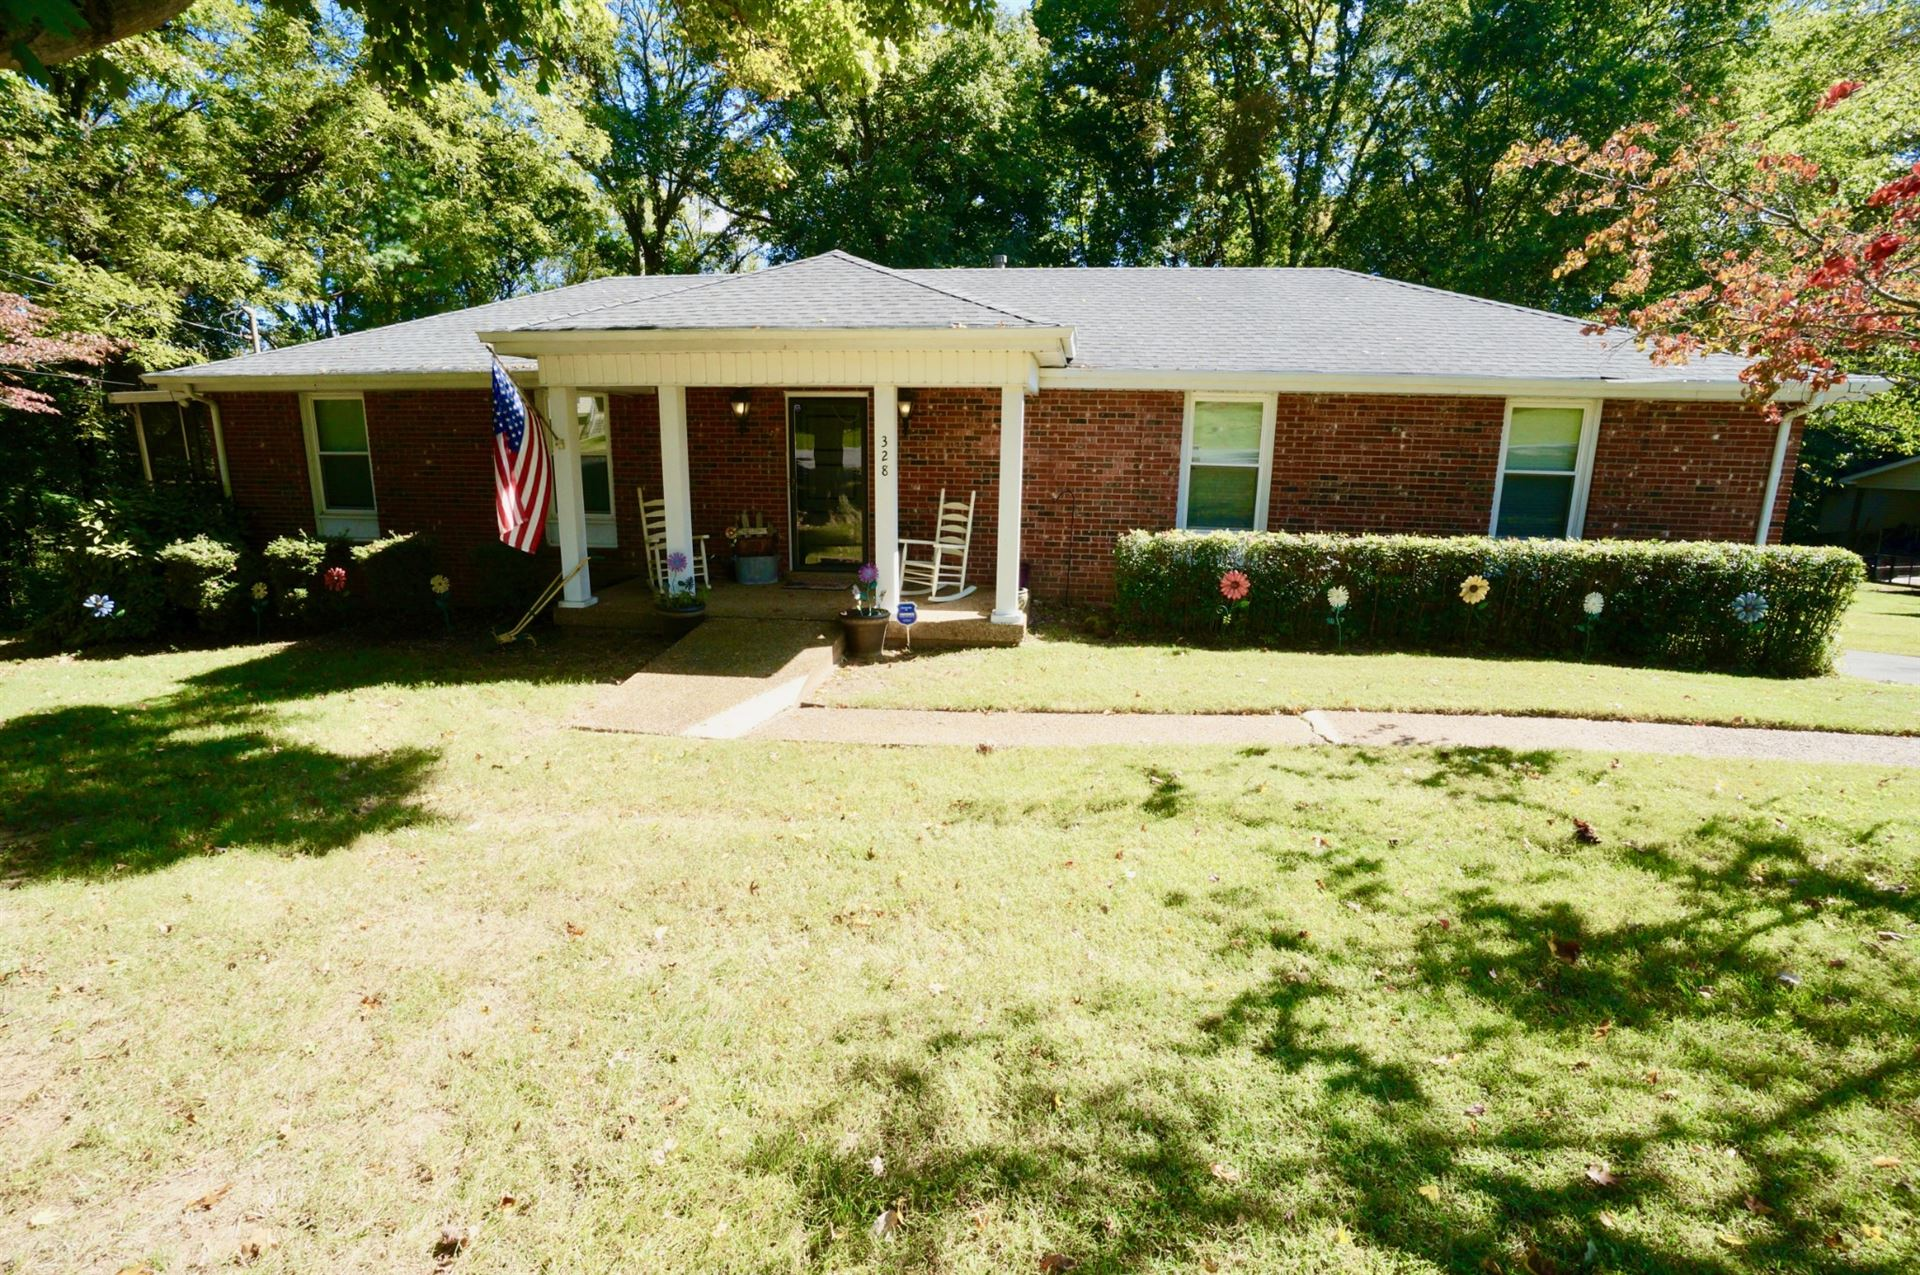 328 Tyne Ct, Old Hickory, TN 37138 - MLS#: 2195841